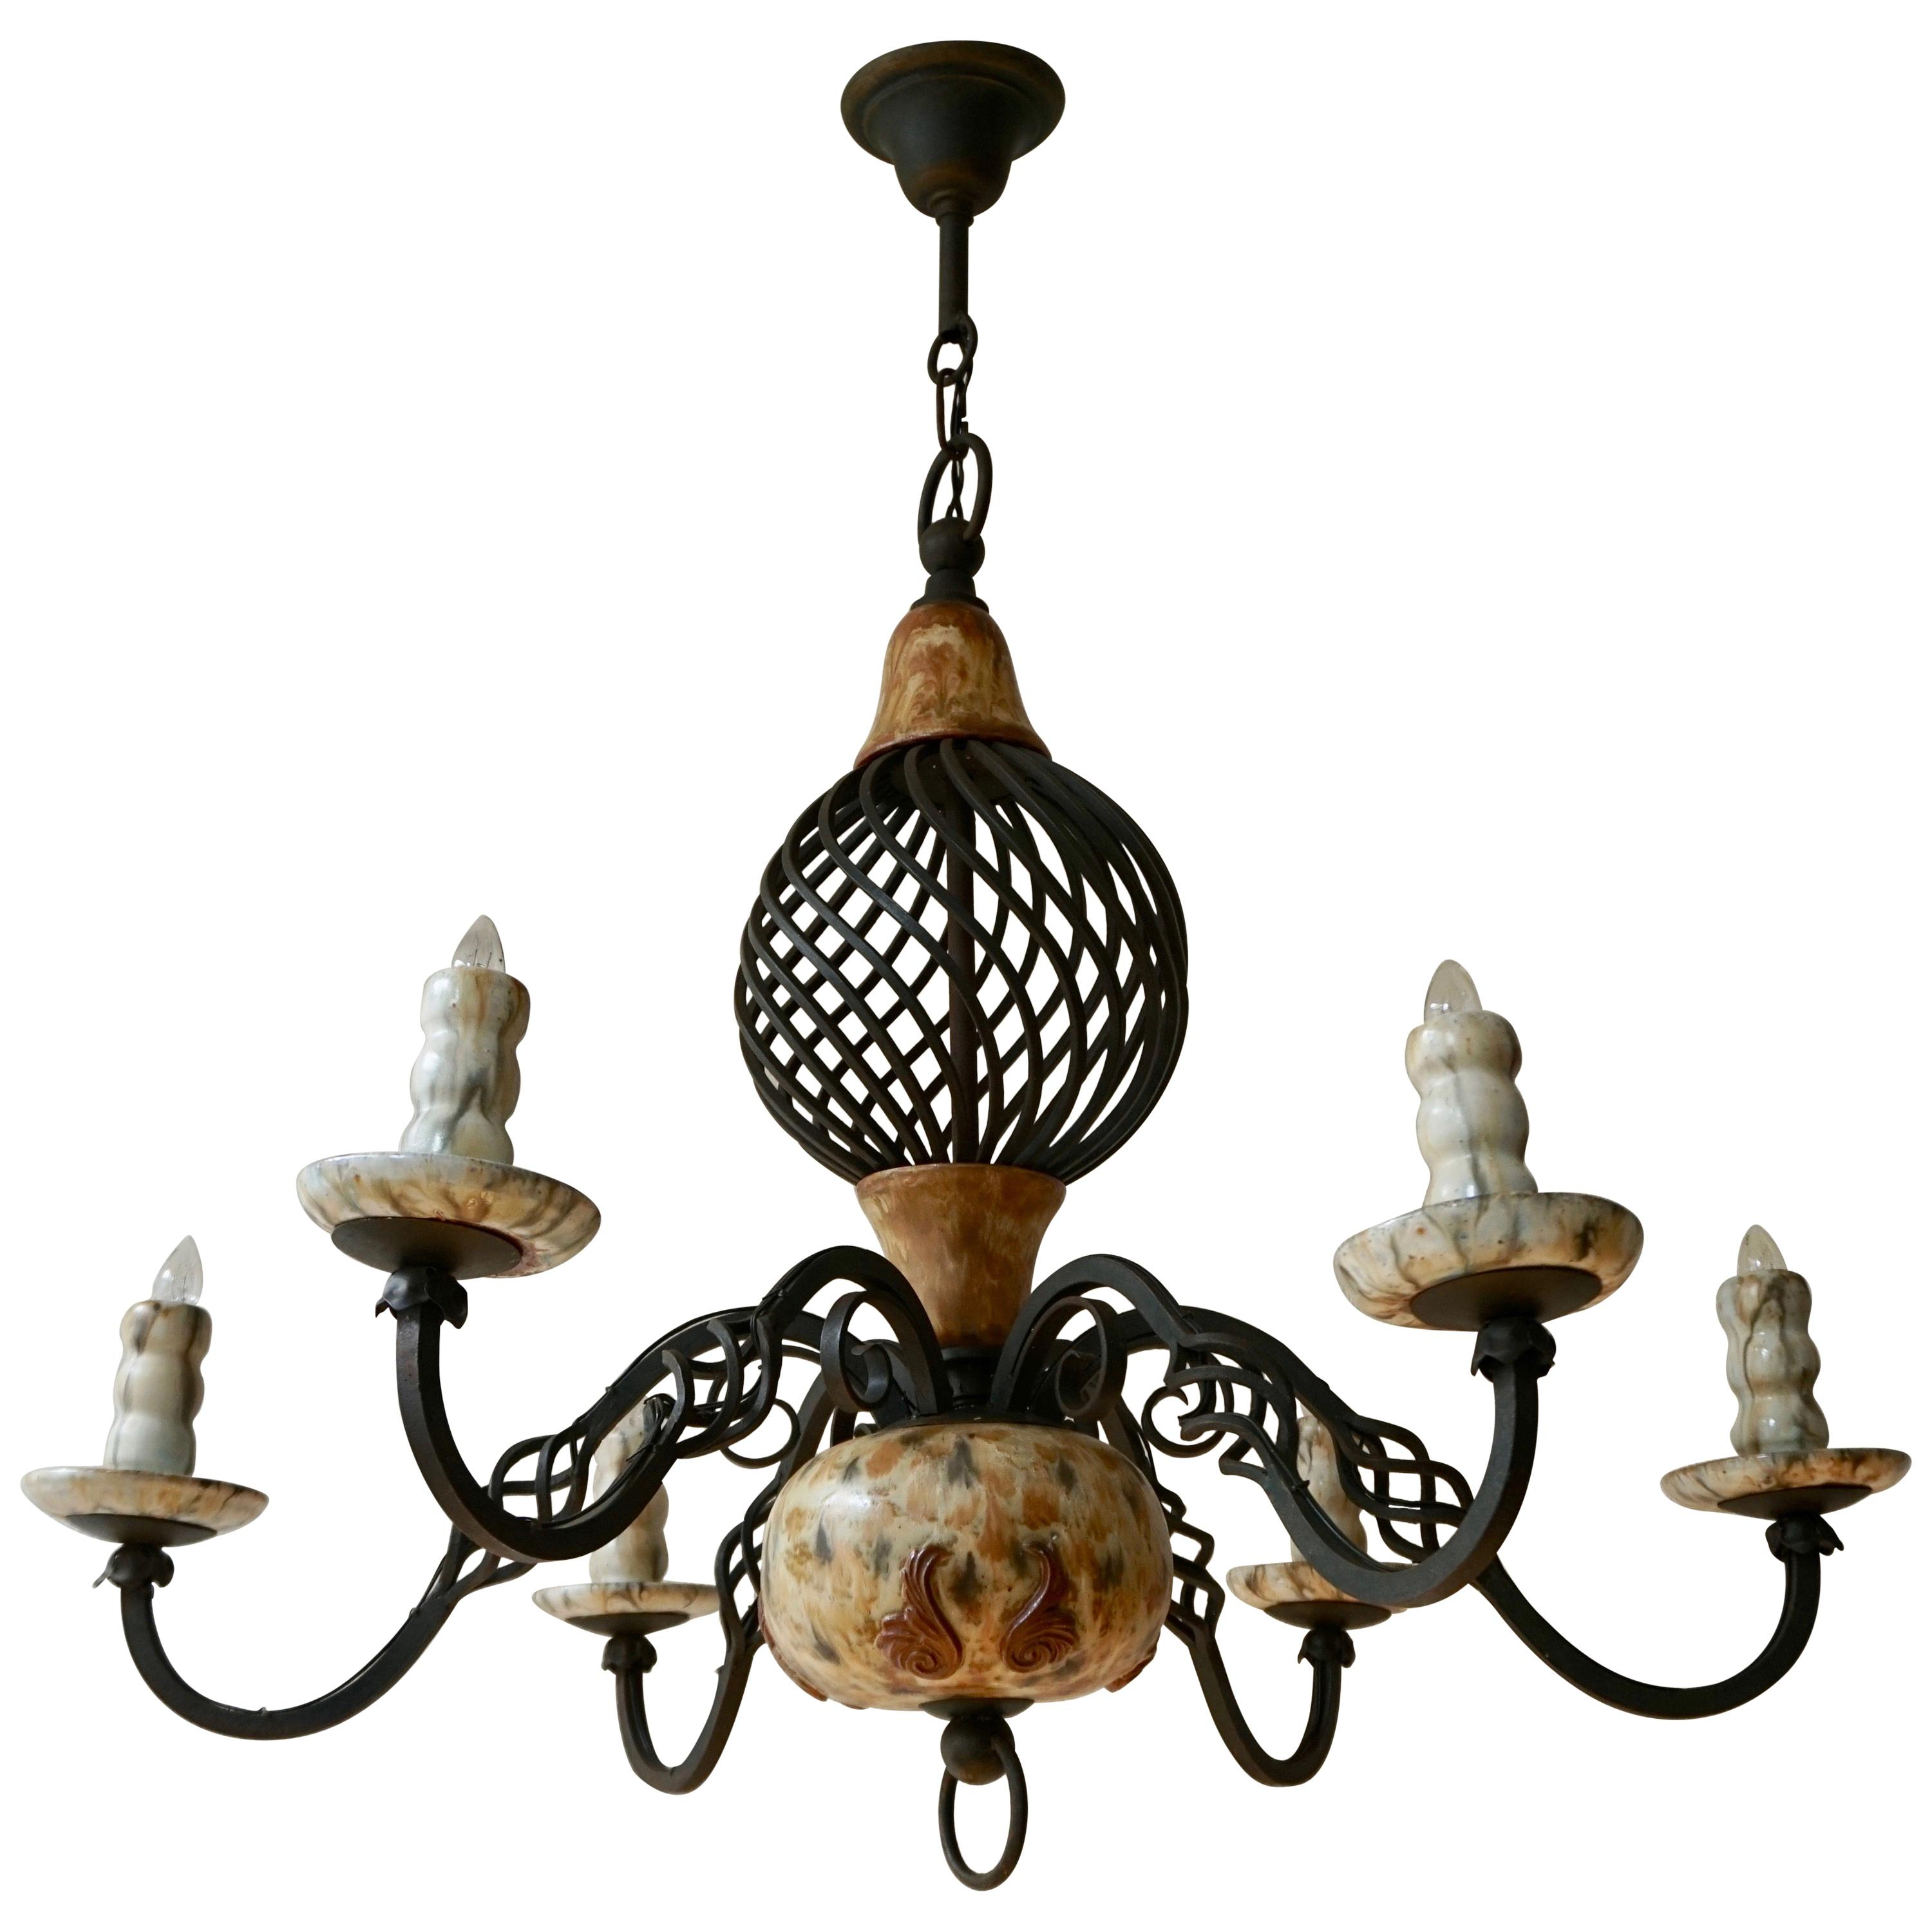 Antique And Vintage Chandeliers And Pendants – 35,242 For Intended For Emaria 3 Light Single Drum Pendants (View 30 of 30)